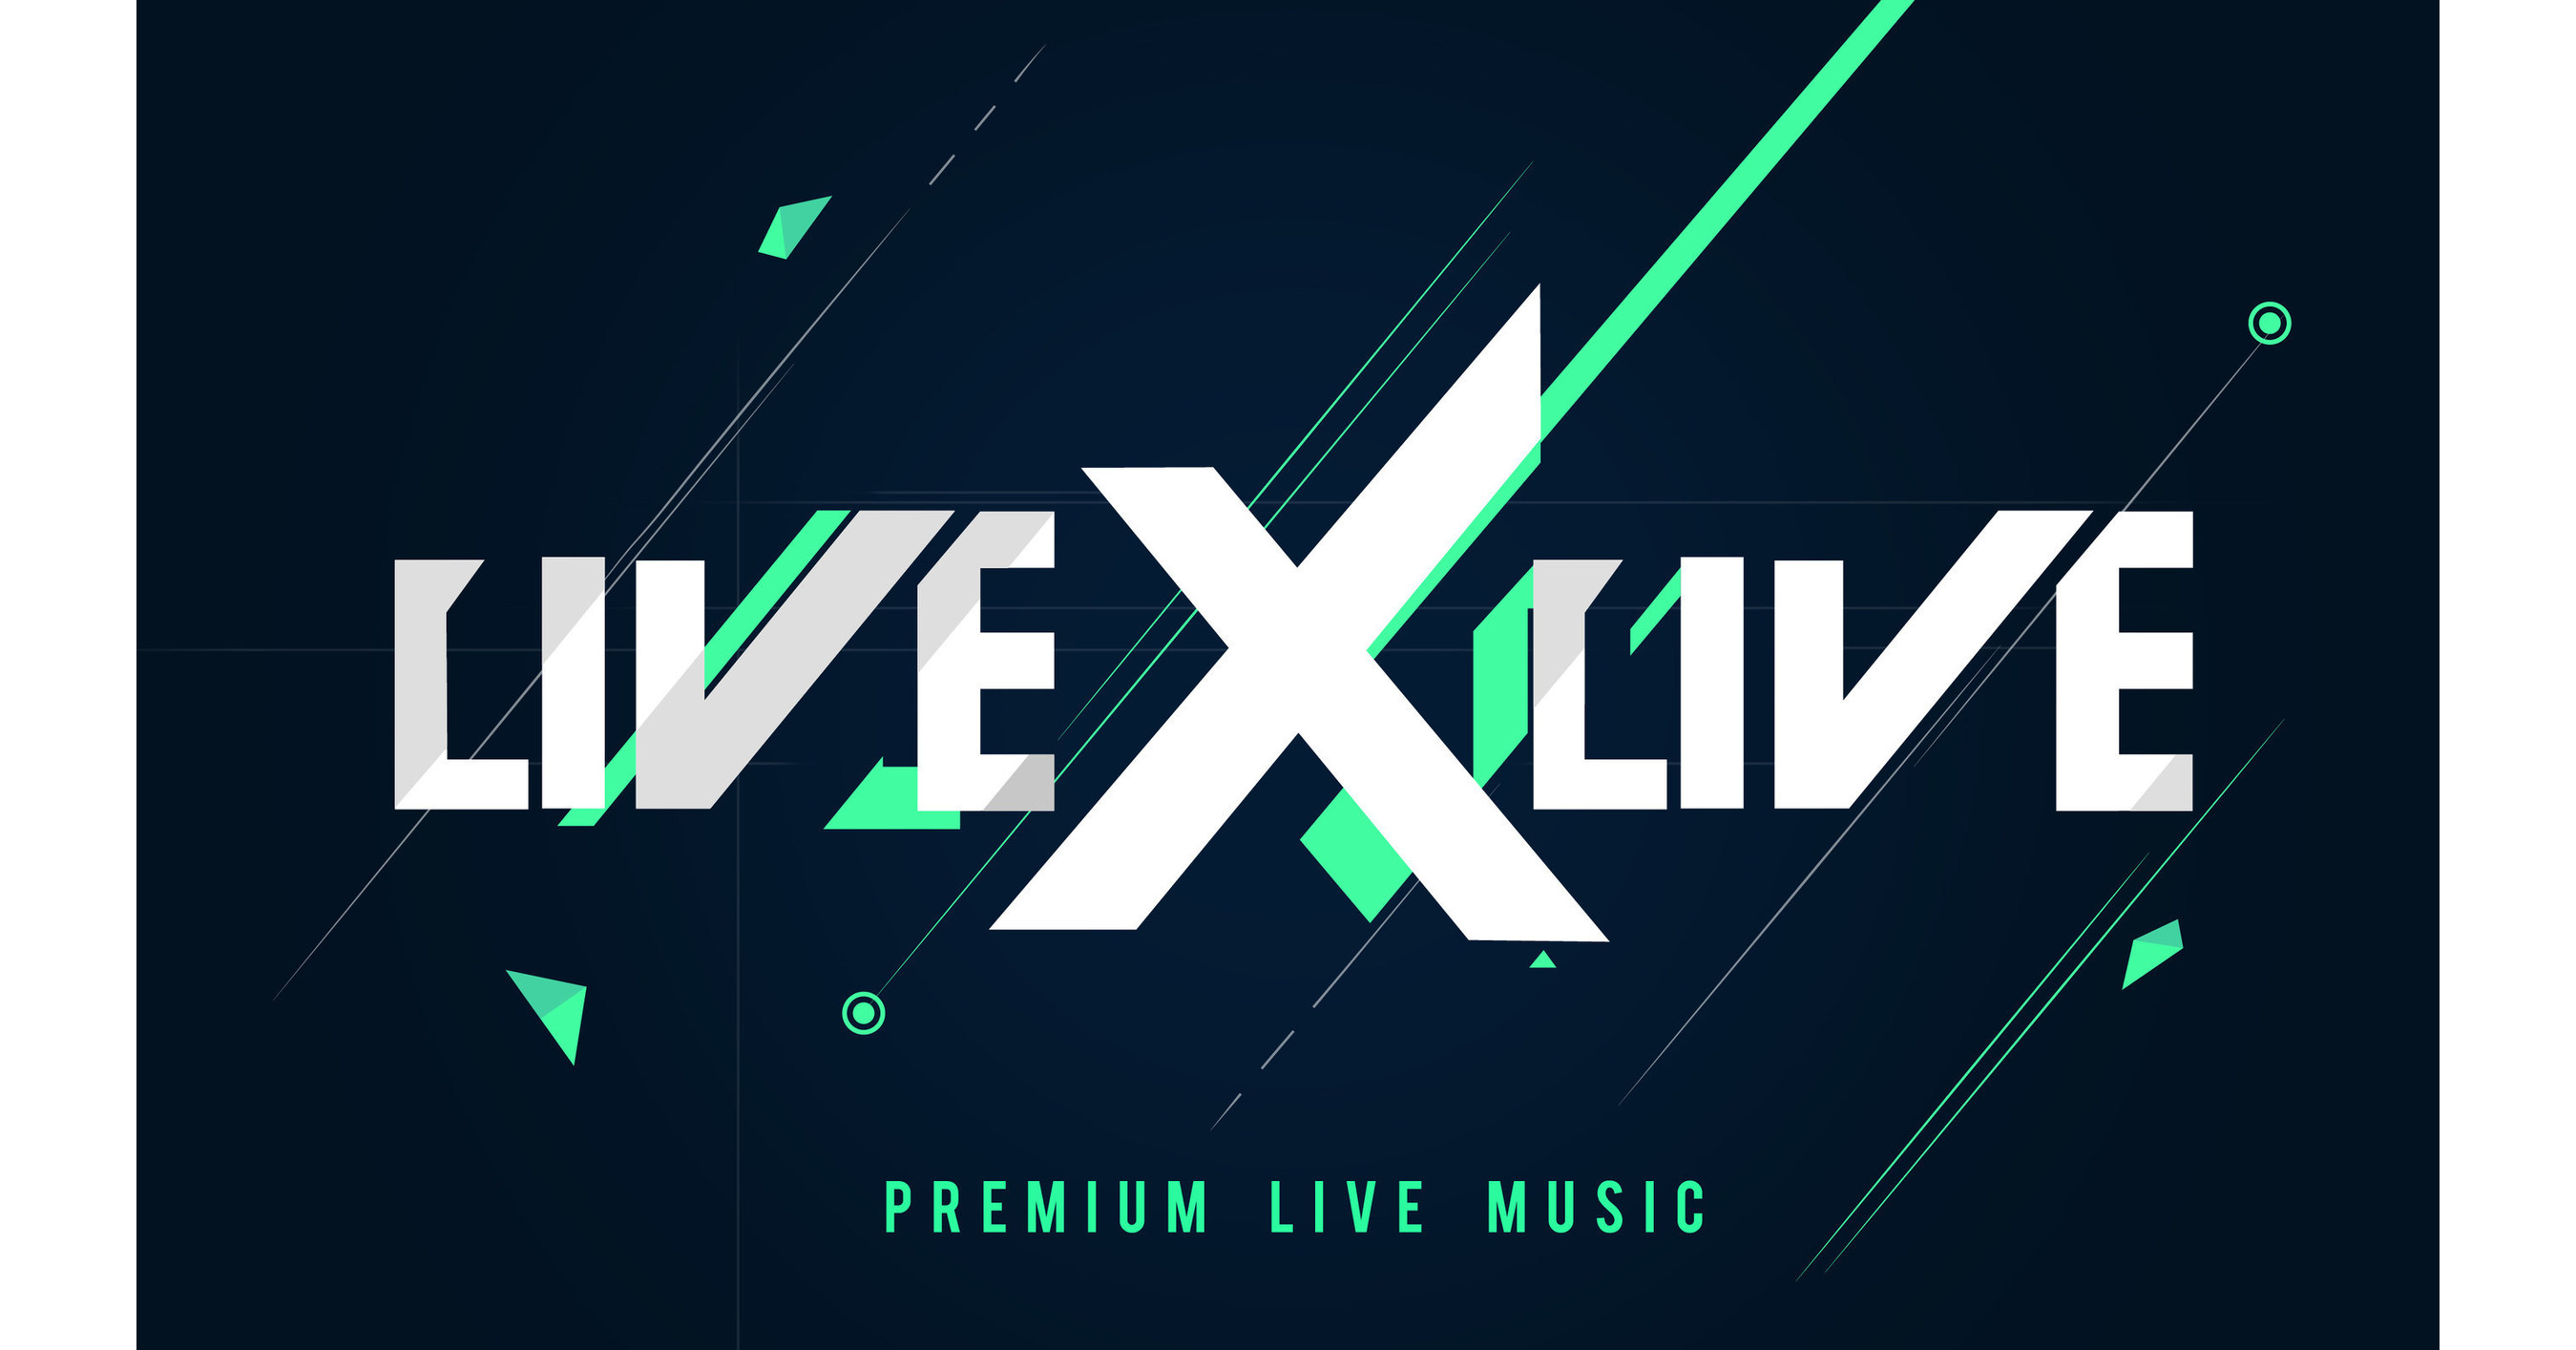 LiveXLive Acquires Slacker Radio, Names Andy Schuon Pres.